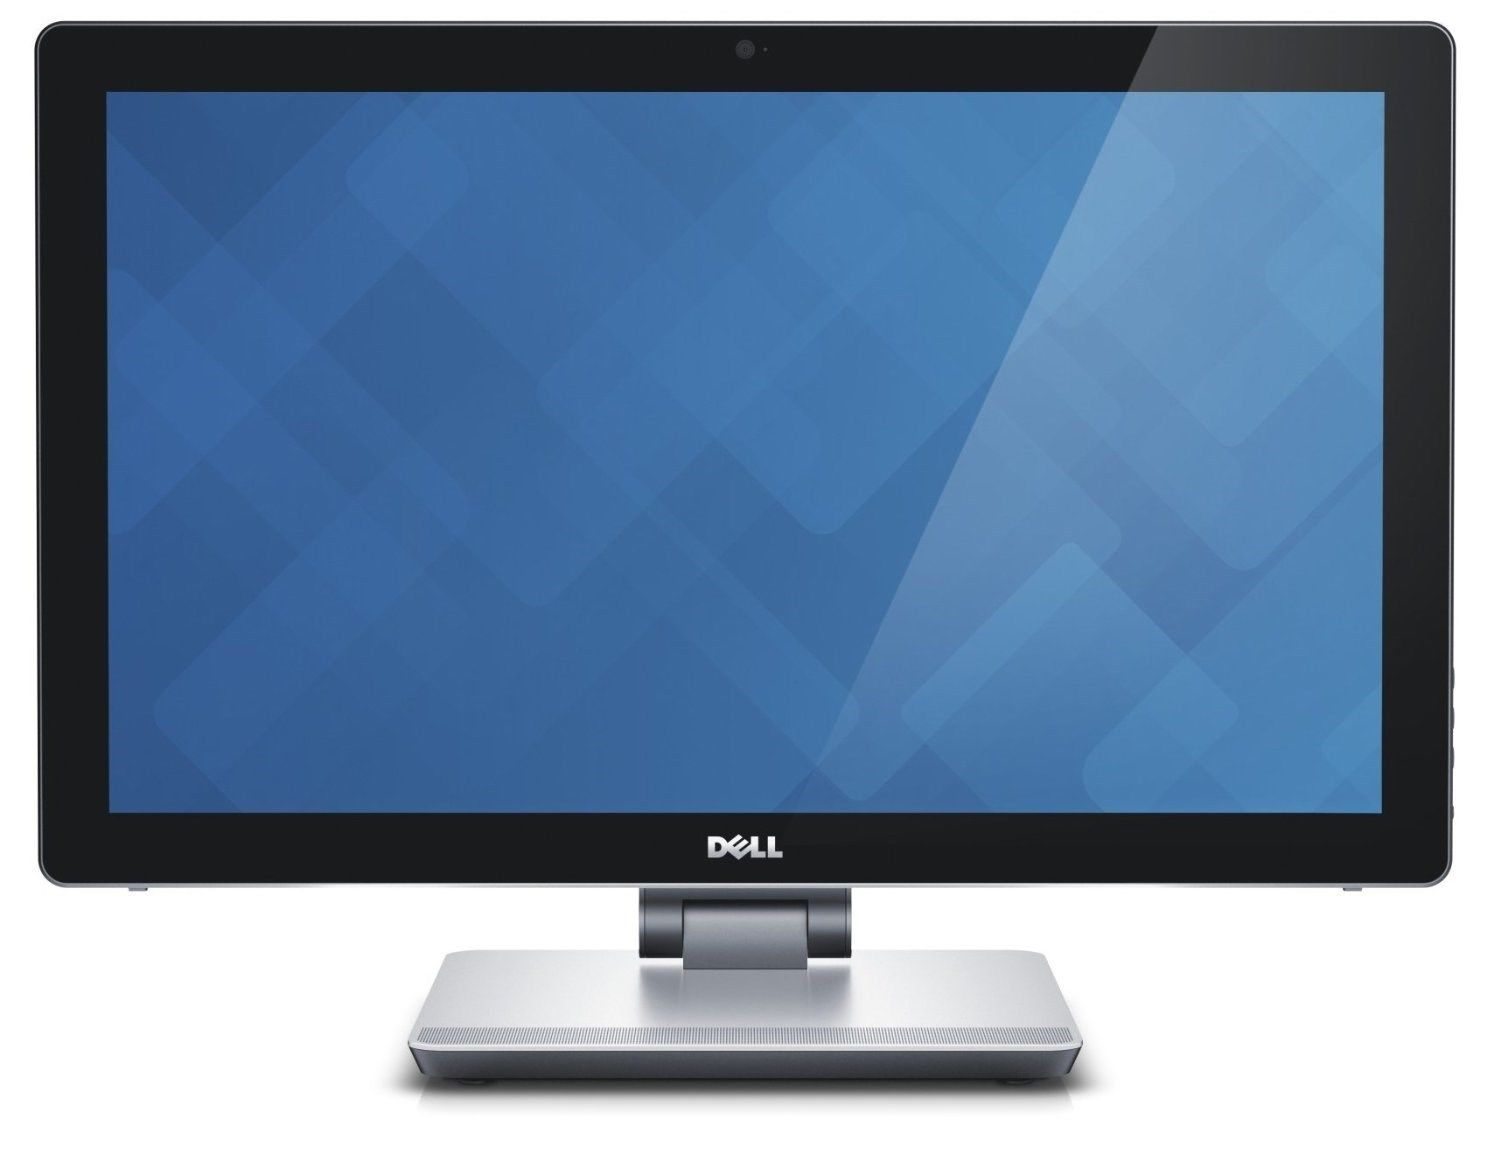 "Dell Inspiron 2350 23"" All-in-One i7-4700MQ 2.4GHz 8GB 500Gb Touchscreen Win 10"